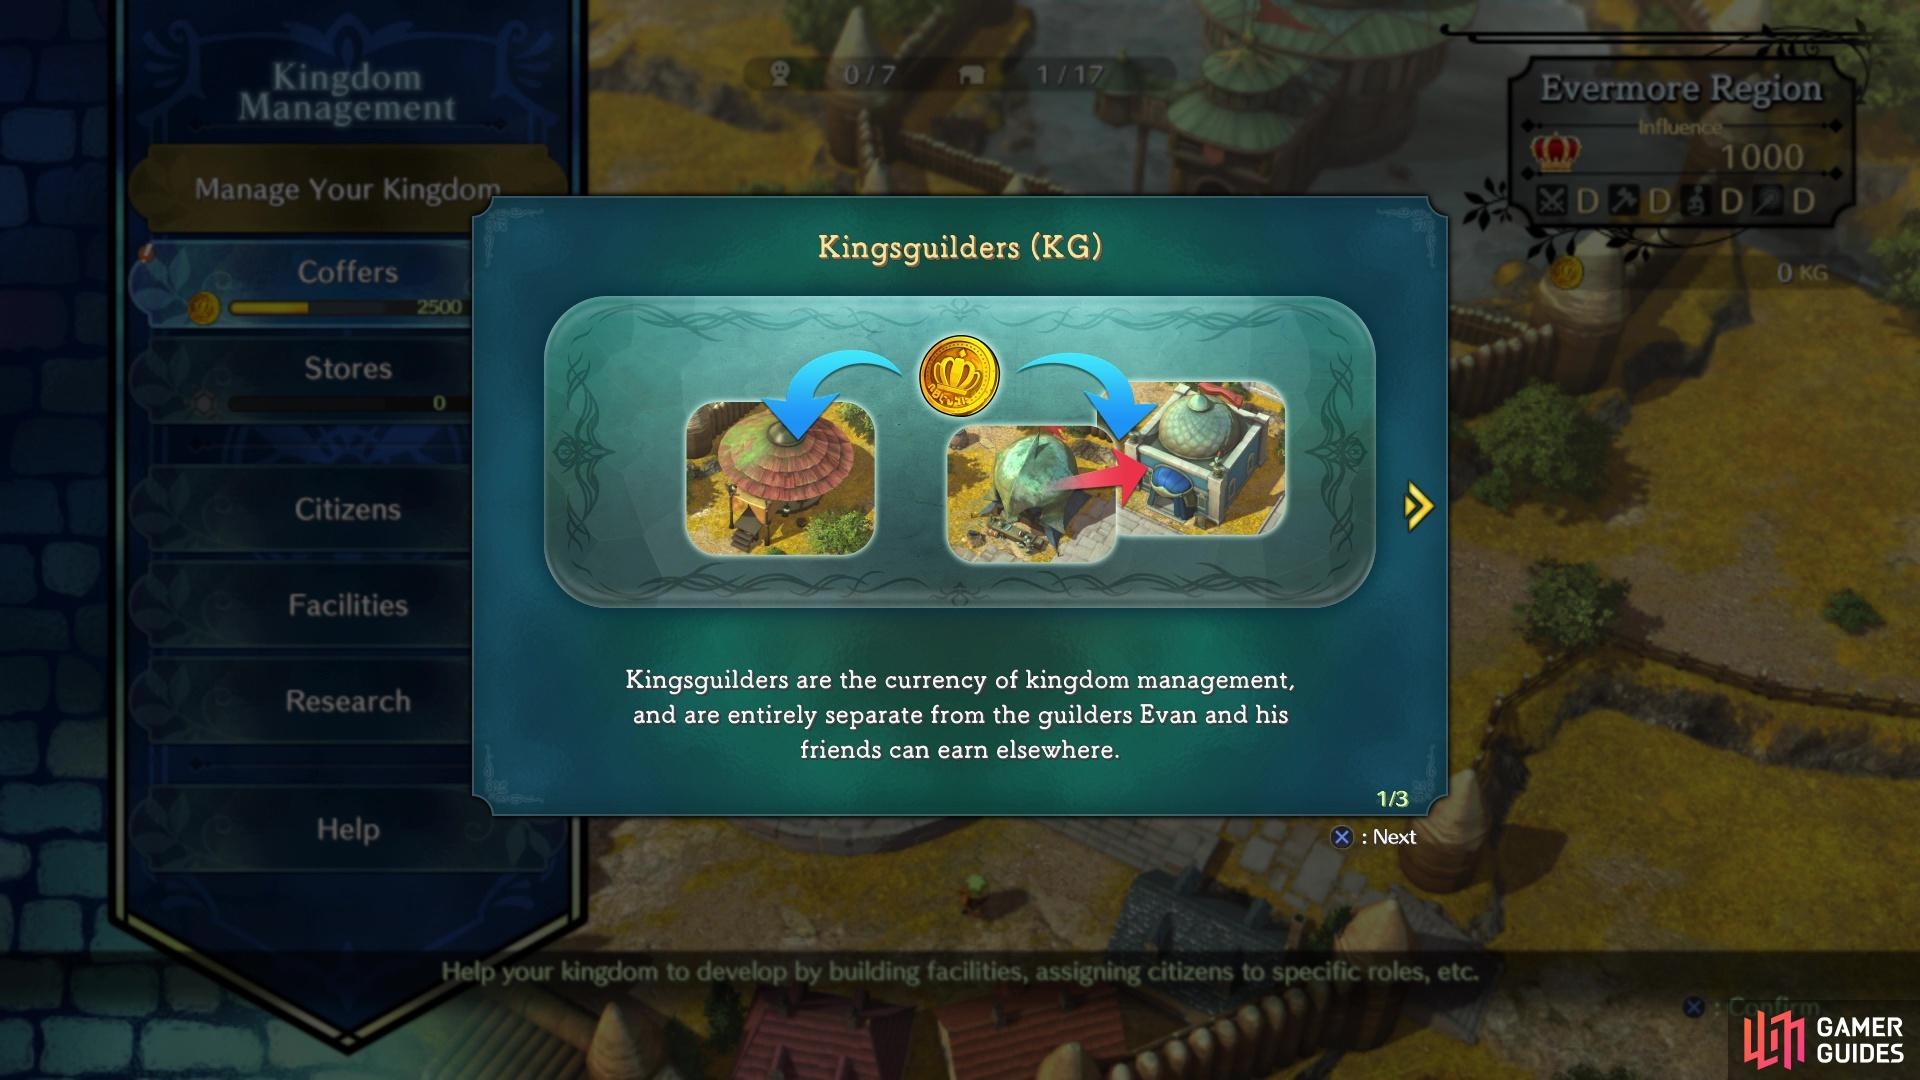 Kingsguilders will be your currency for building your kingdom